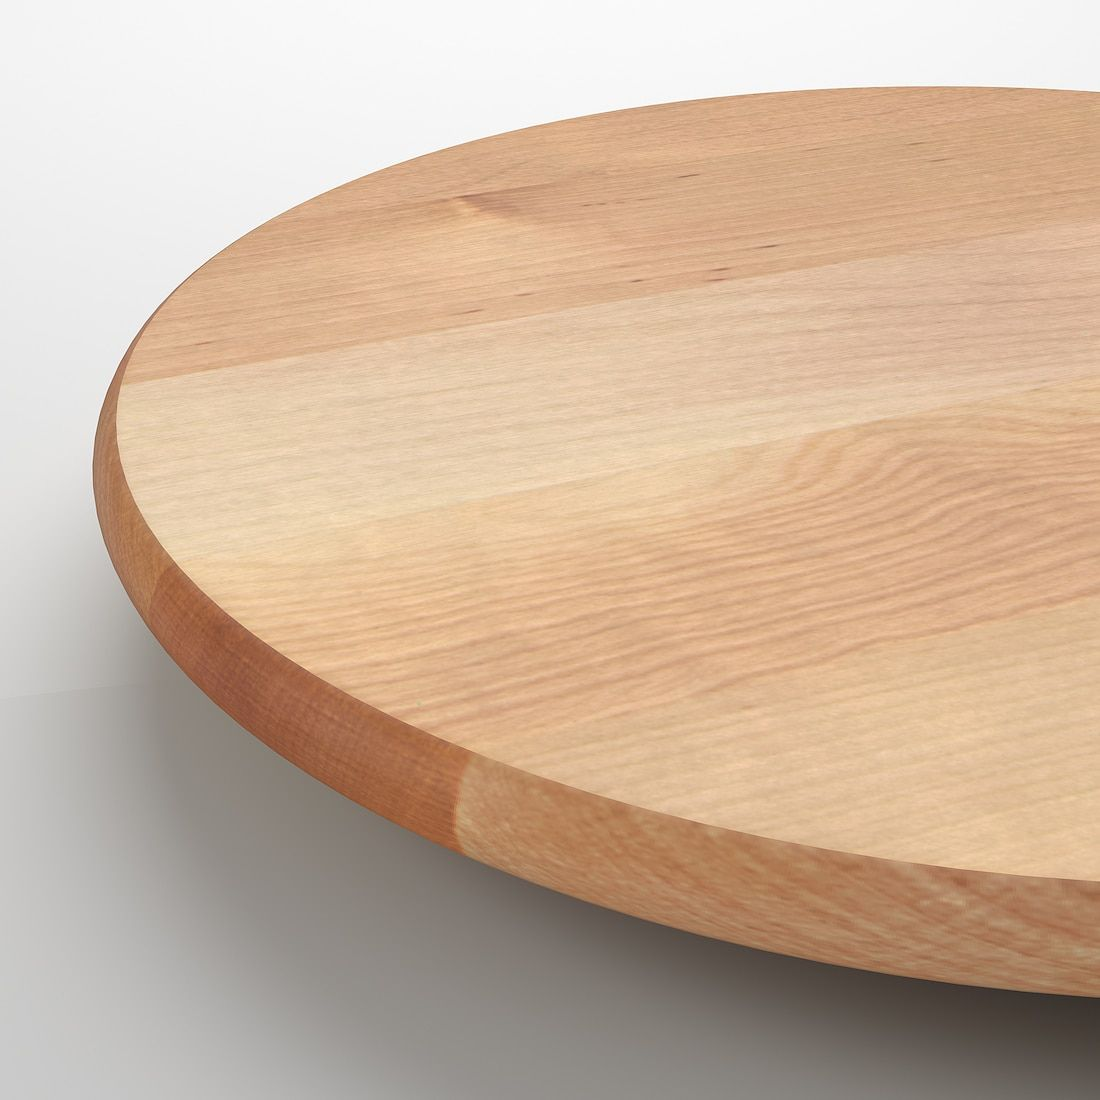 Woodworking Plans For Kitchen Spice Rack: IKEA SNUDDA Solid Wood Birch Lazy Susan In 2020